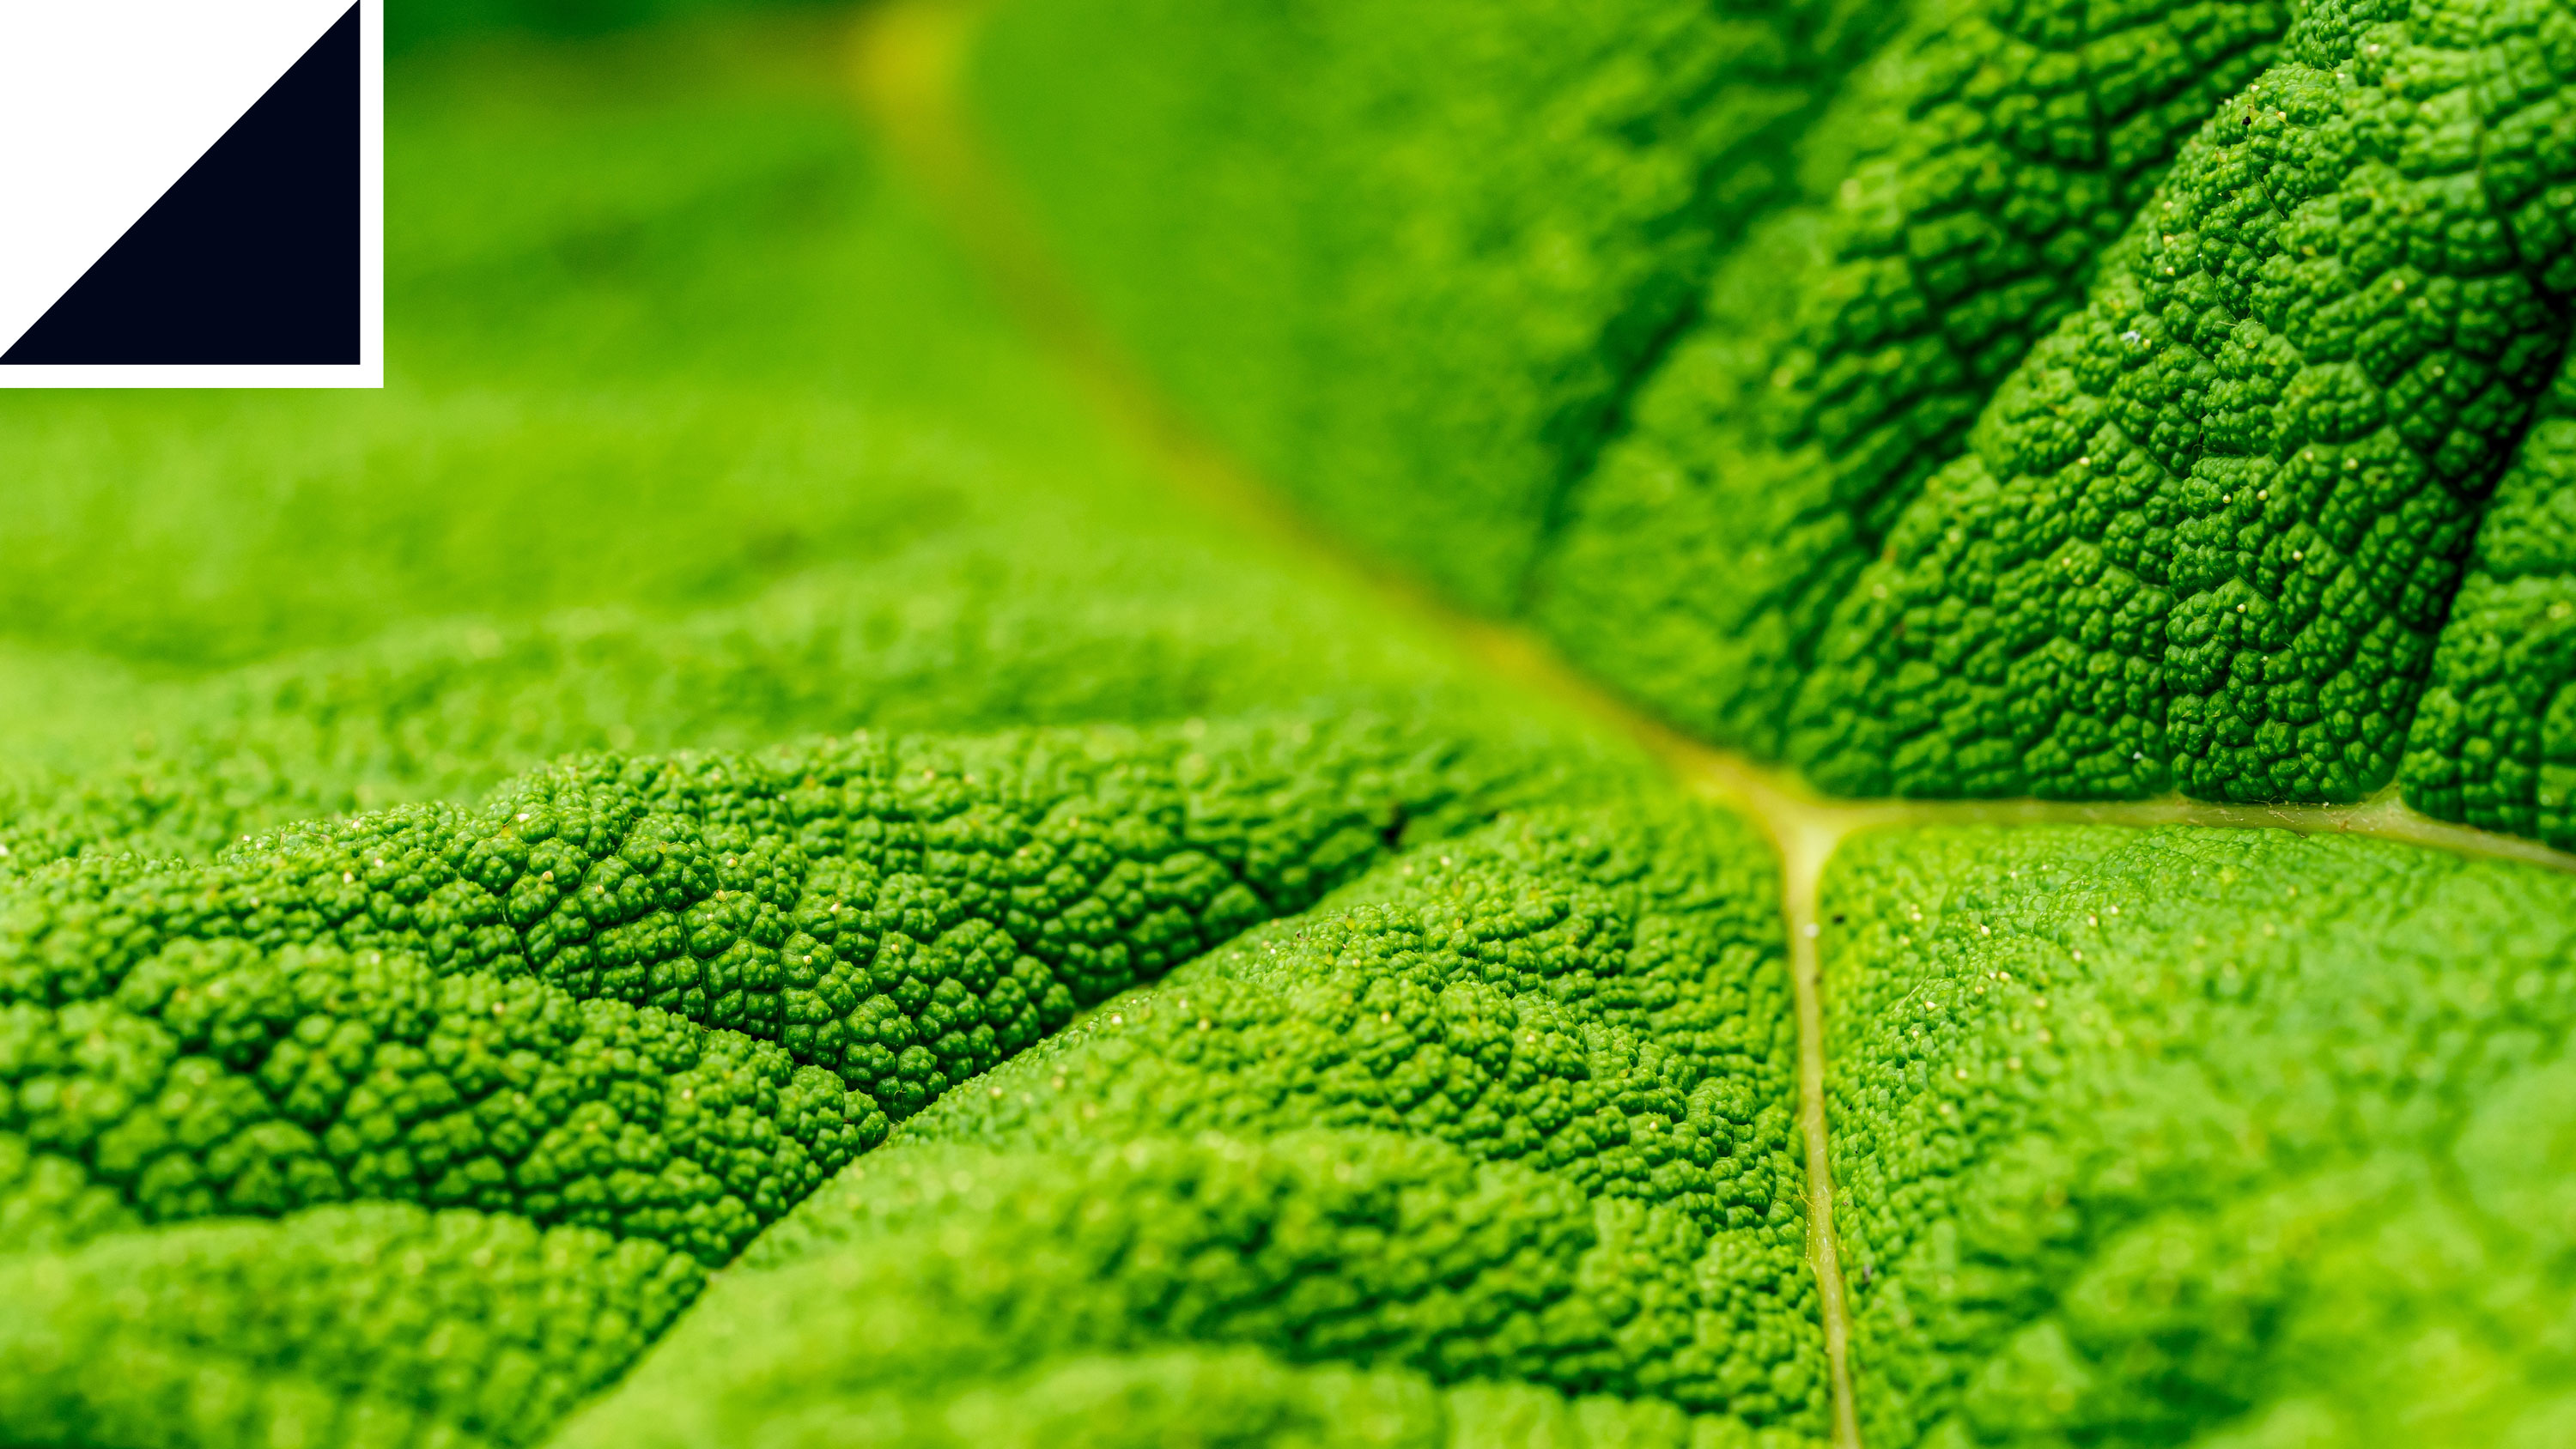 How a Newton's cradle for photons could reveal the secrets of photosynthesis